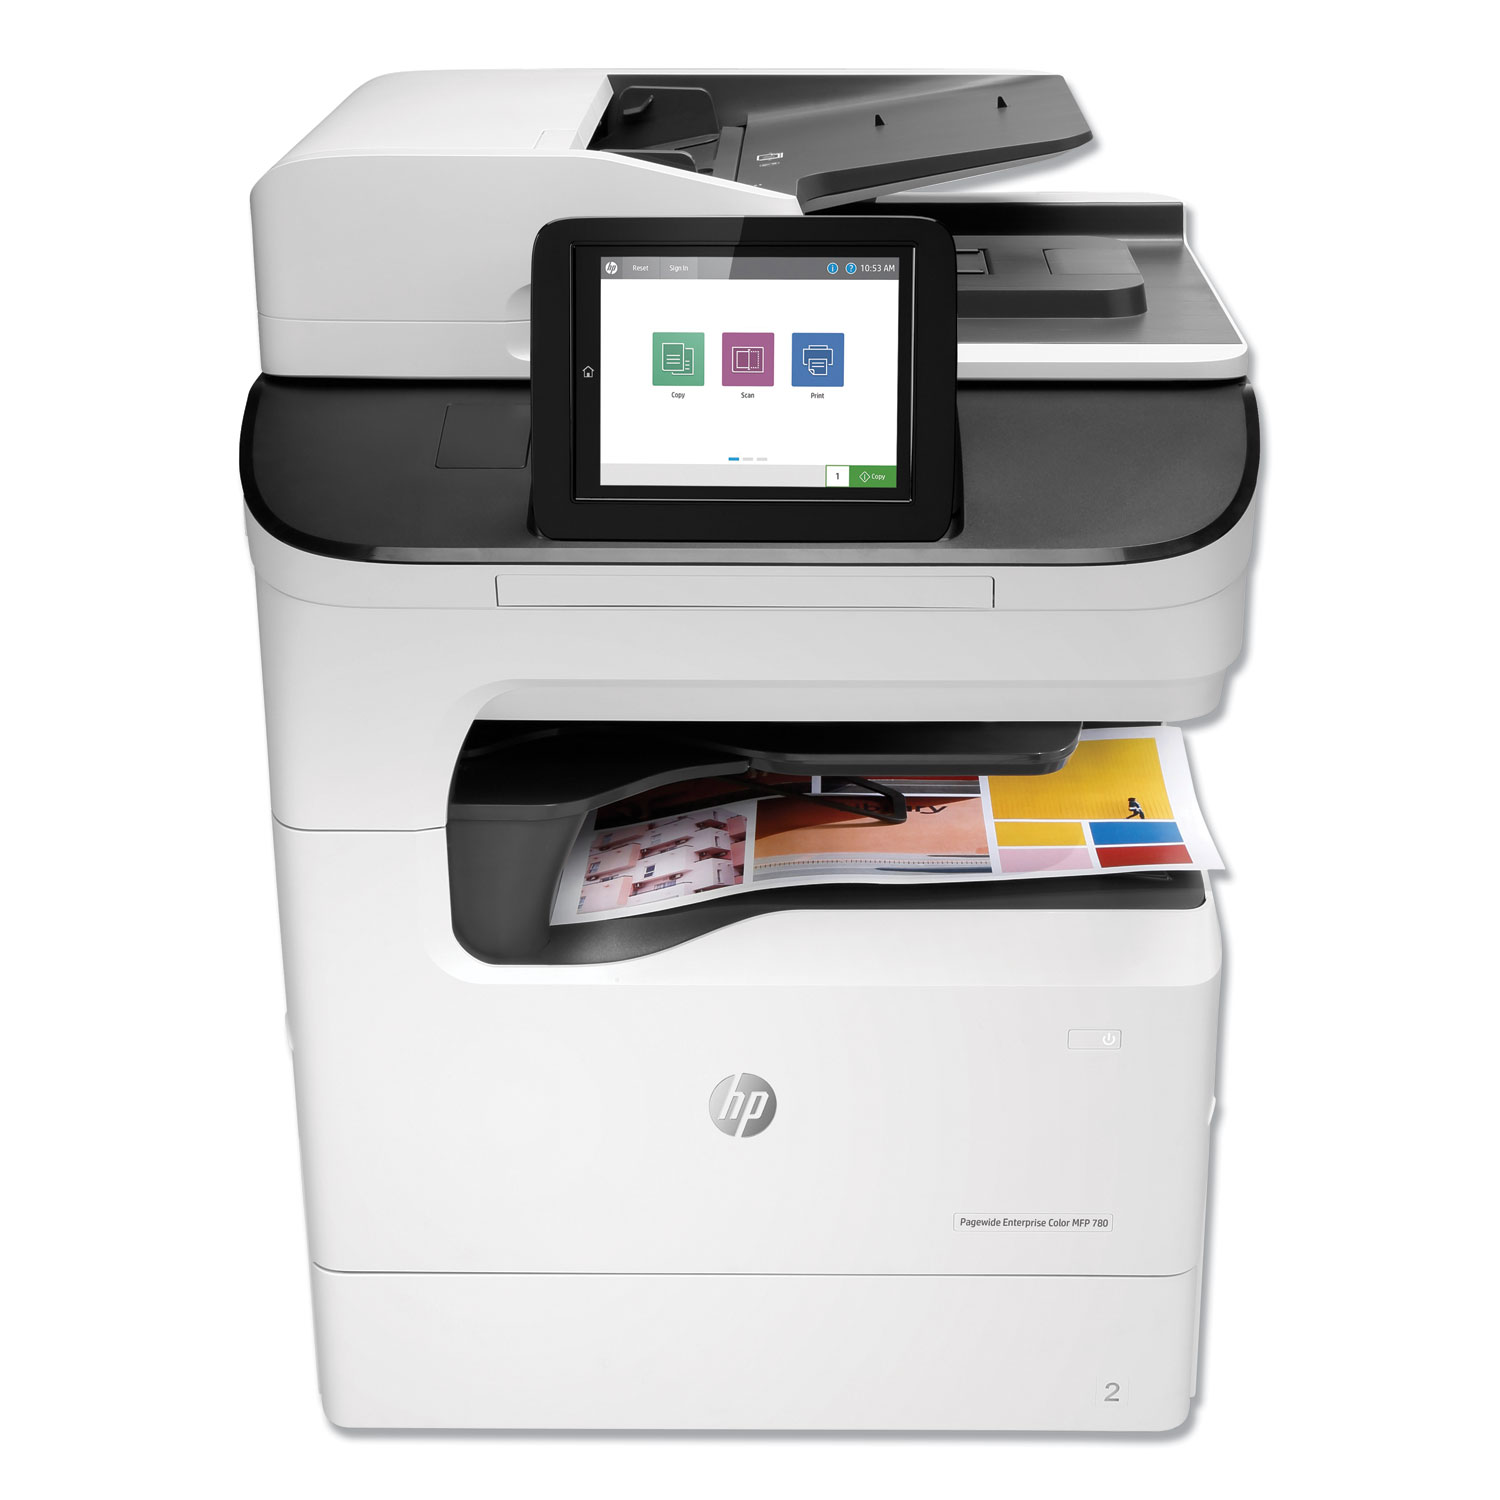 PageWide Enterprise Color MFP 780dns, Copy/Fax/Print/Scan